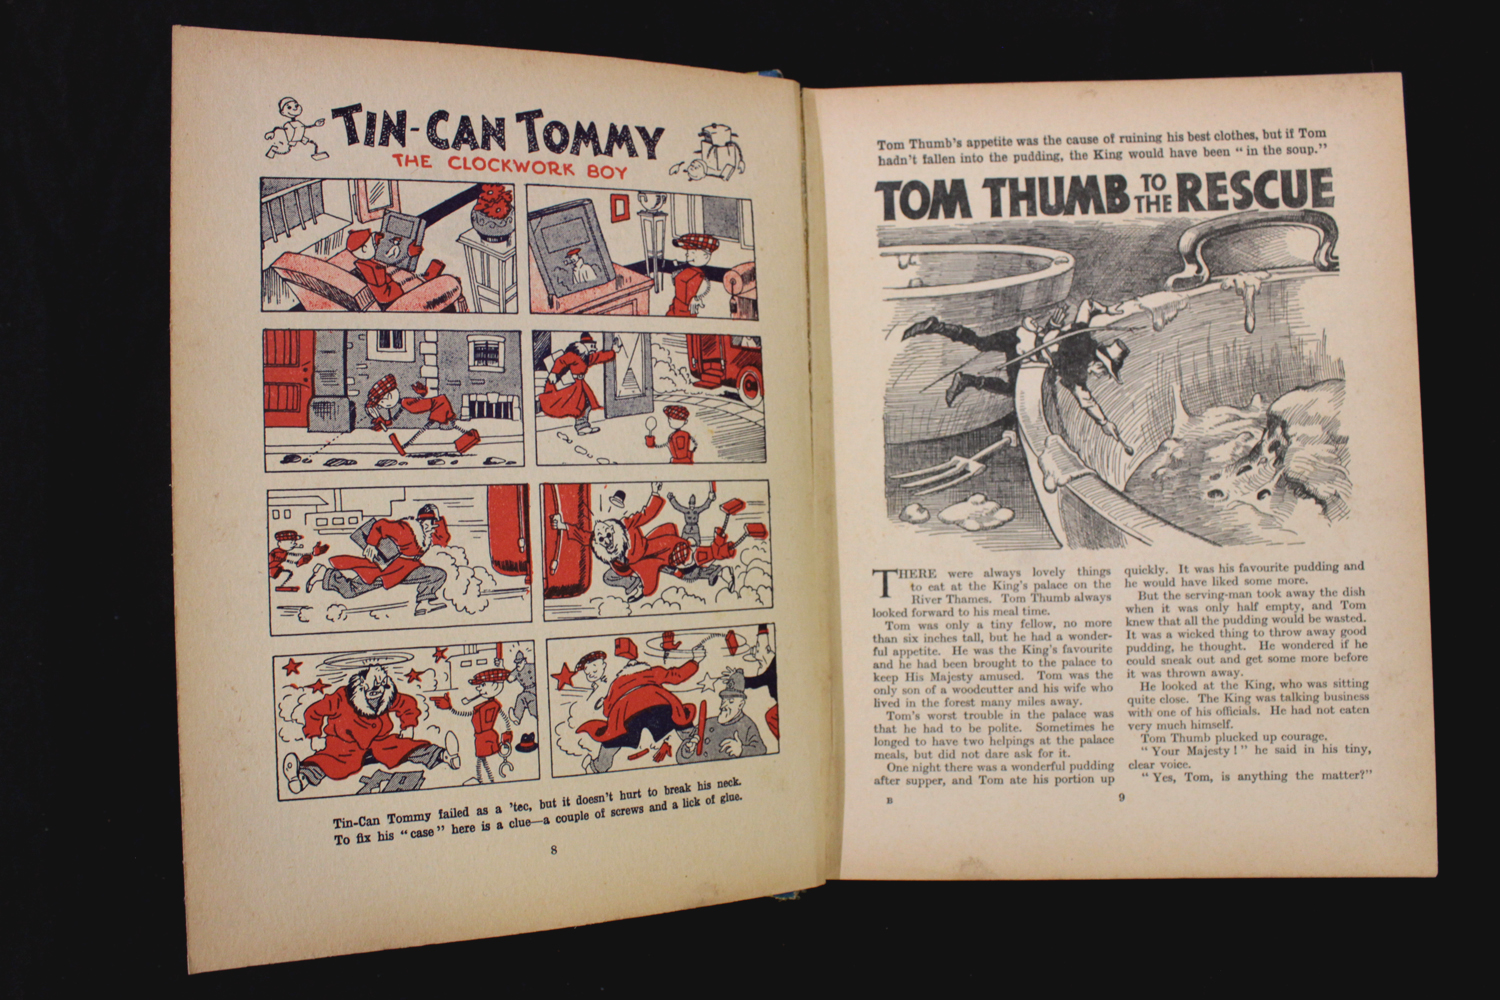 THE BEANO BOOK [No 1 Annual for 1940], London, Manchester and Dundee, D C Thomson & Co, [1939], 128p - Image 9 of 16